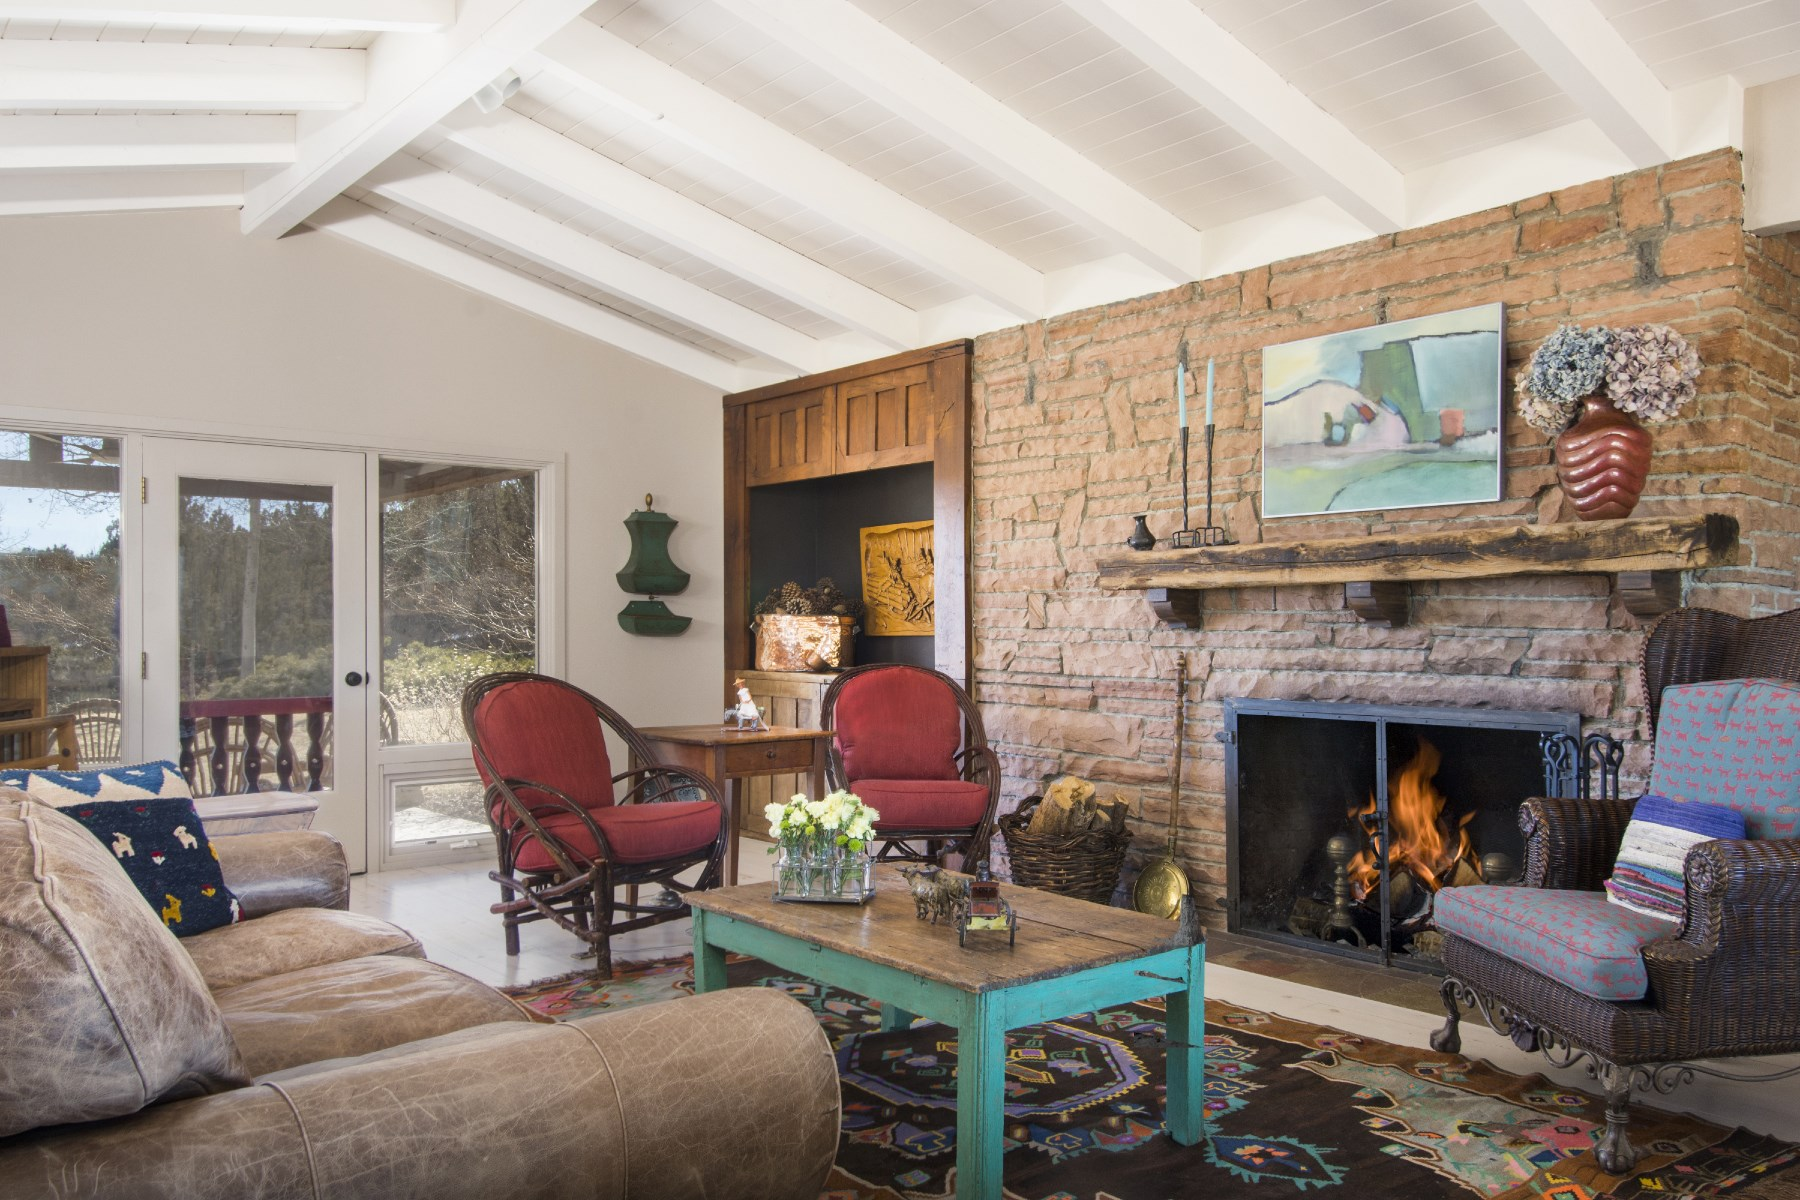 Single Family Home for Sale at 86 Headquarters Trail Santa Fe, New Mexico, 87506 United States